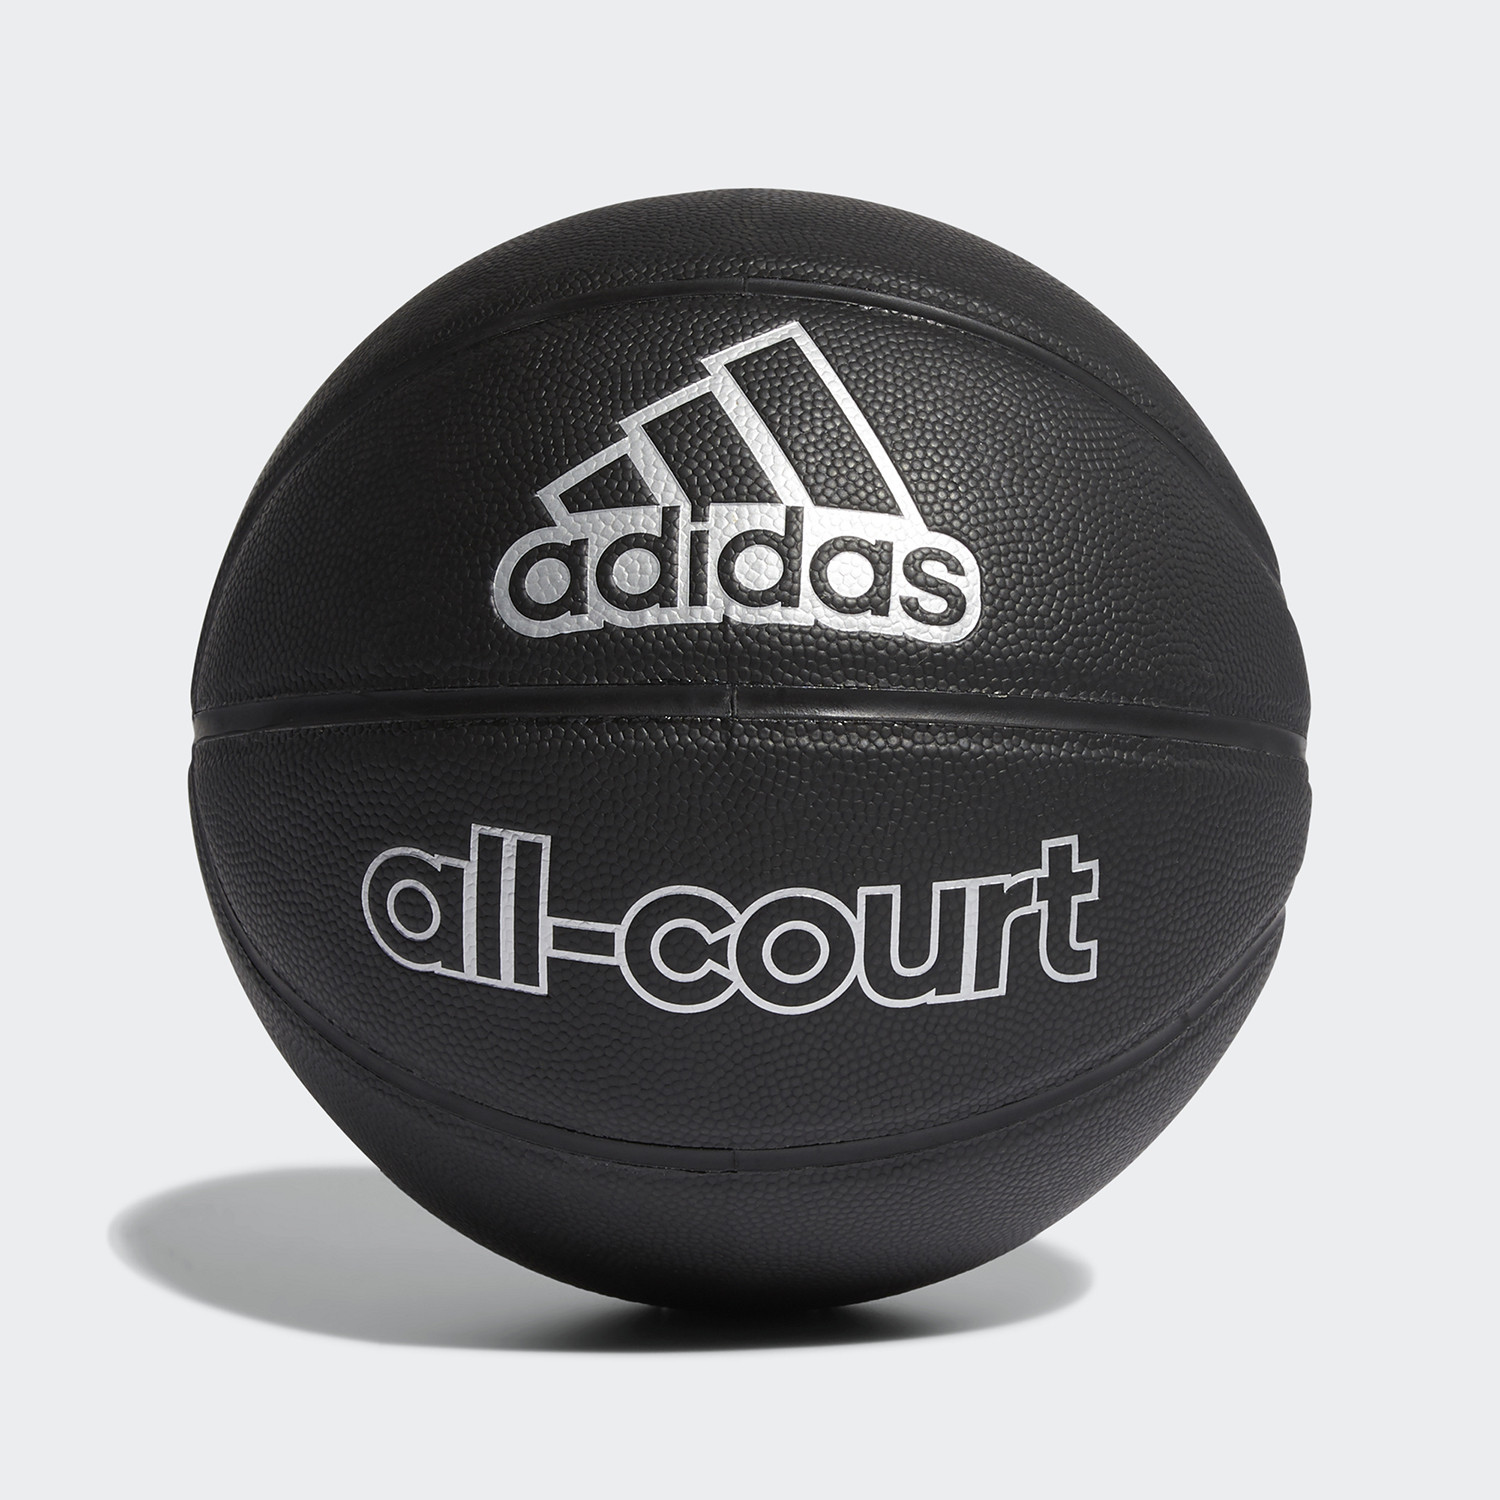 adidas All Court Μπάλα Μπάσκετ No 7 (9000058321_10681)